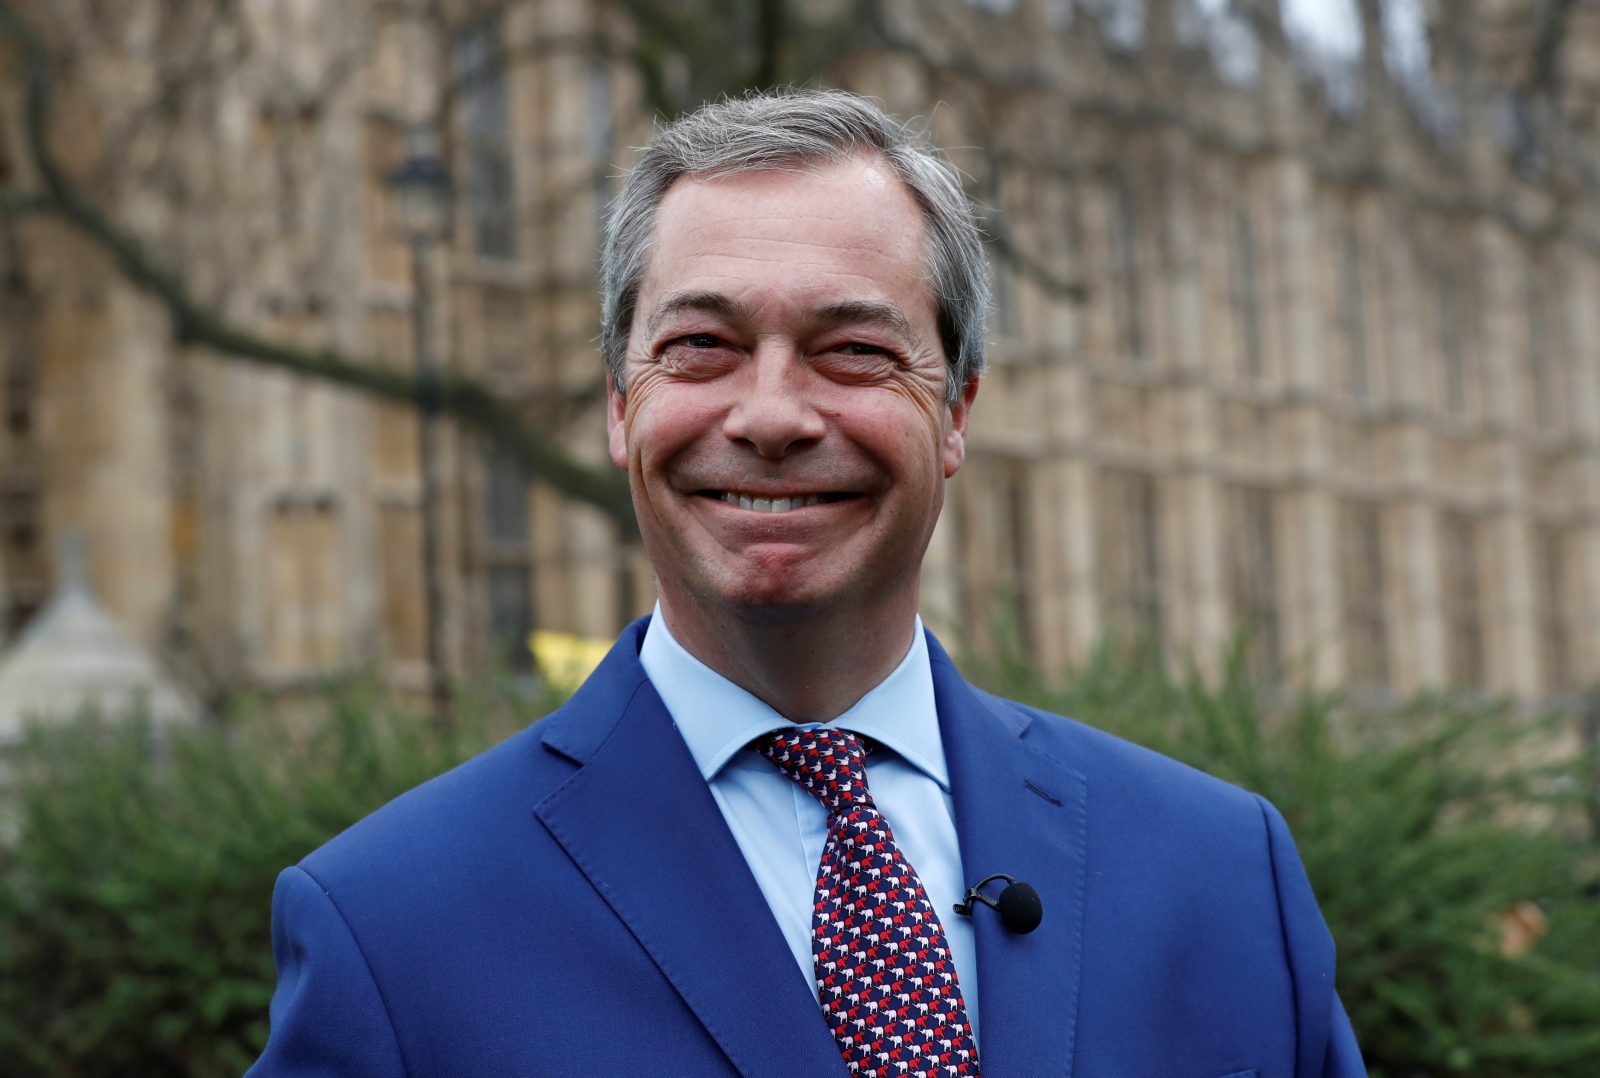 Nigel Farage 'thrilled' on Article 50 trigger day